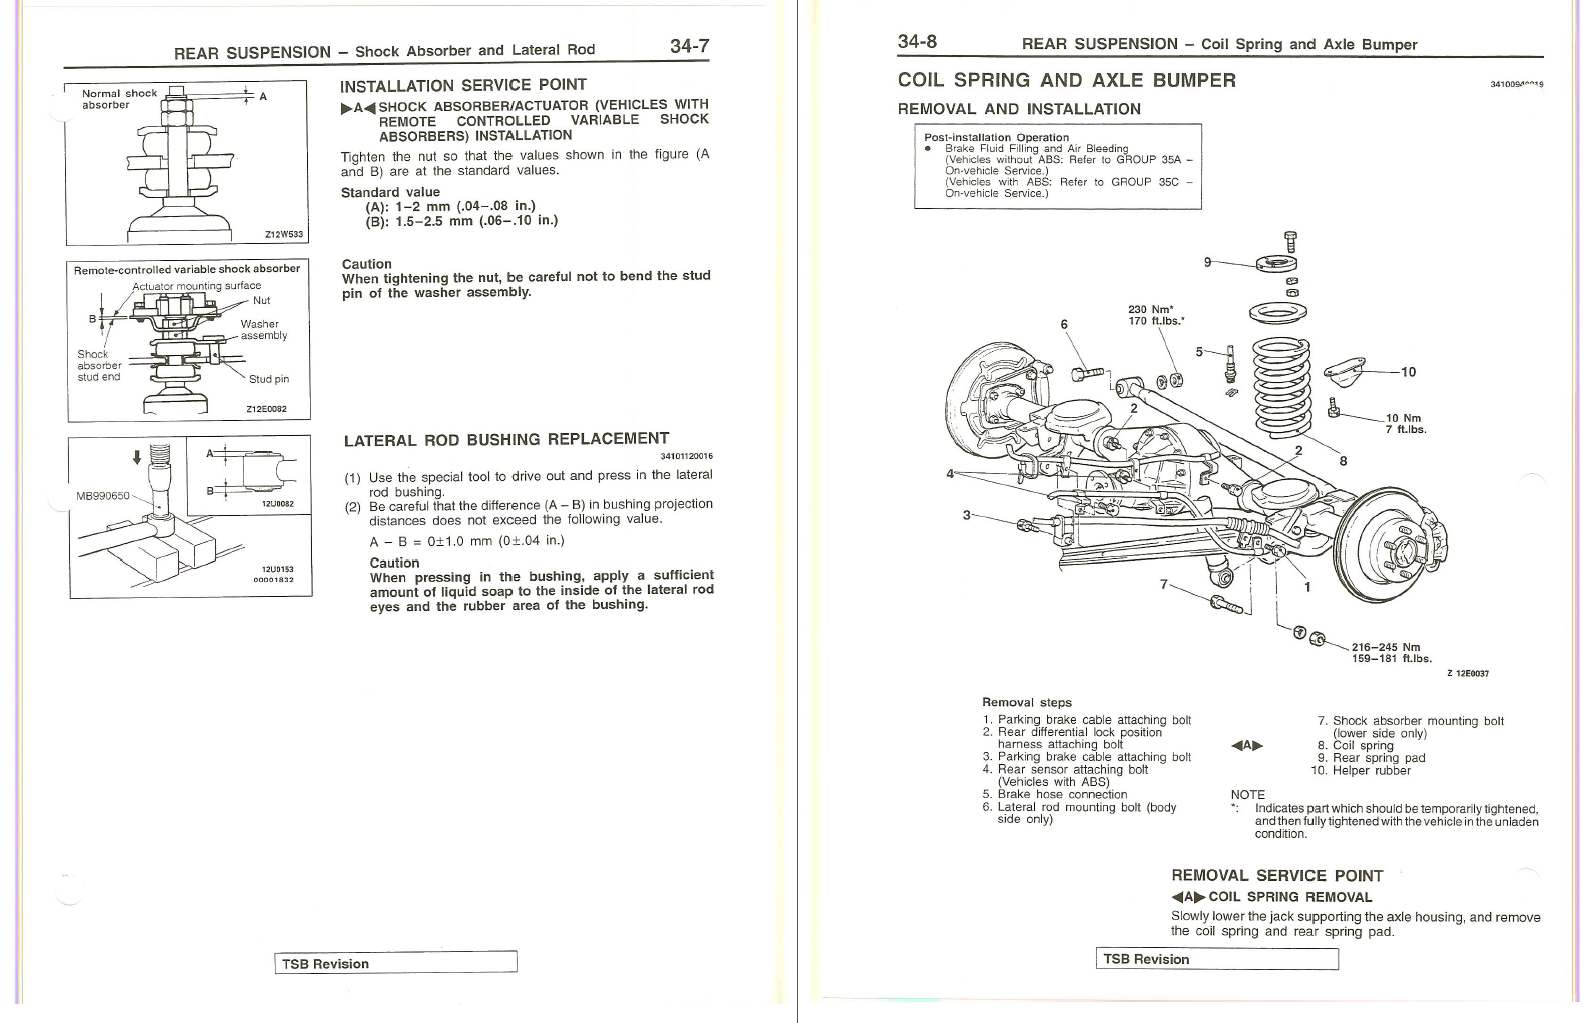 1998 Mitsubishi Montero Factory Repair Service Manual MSSP-004B-98